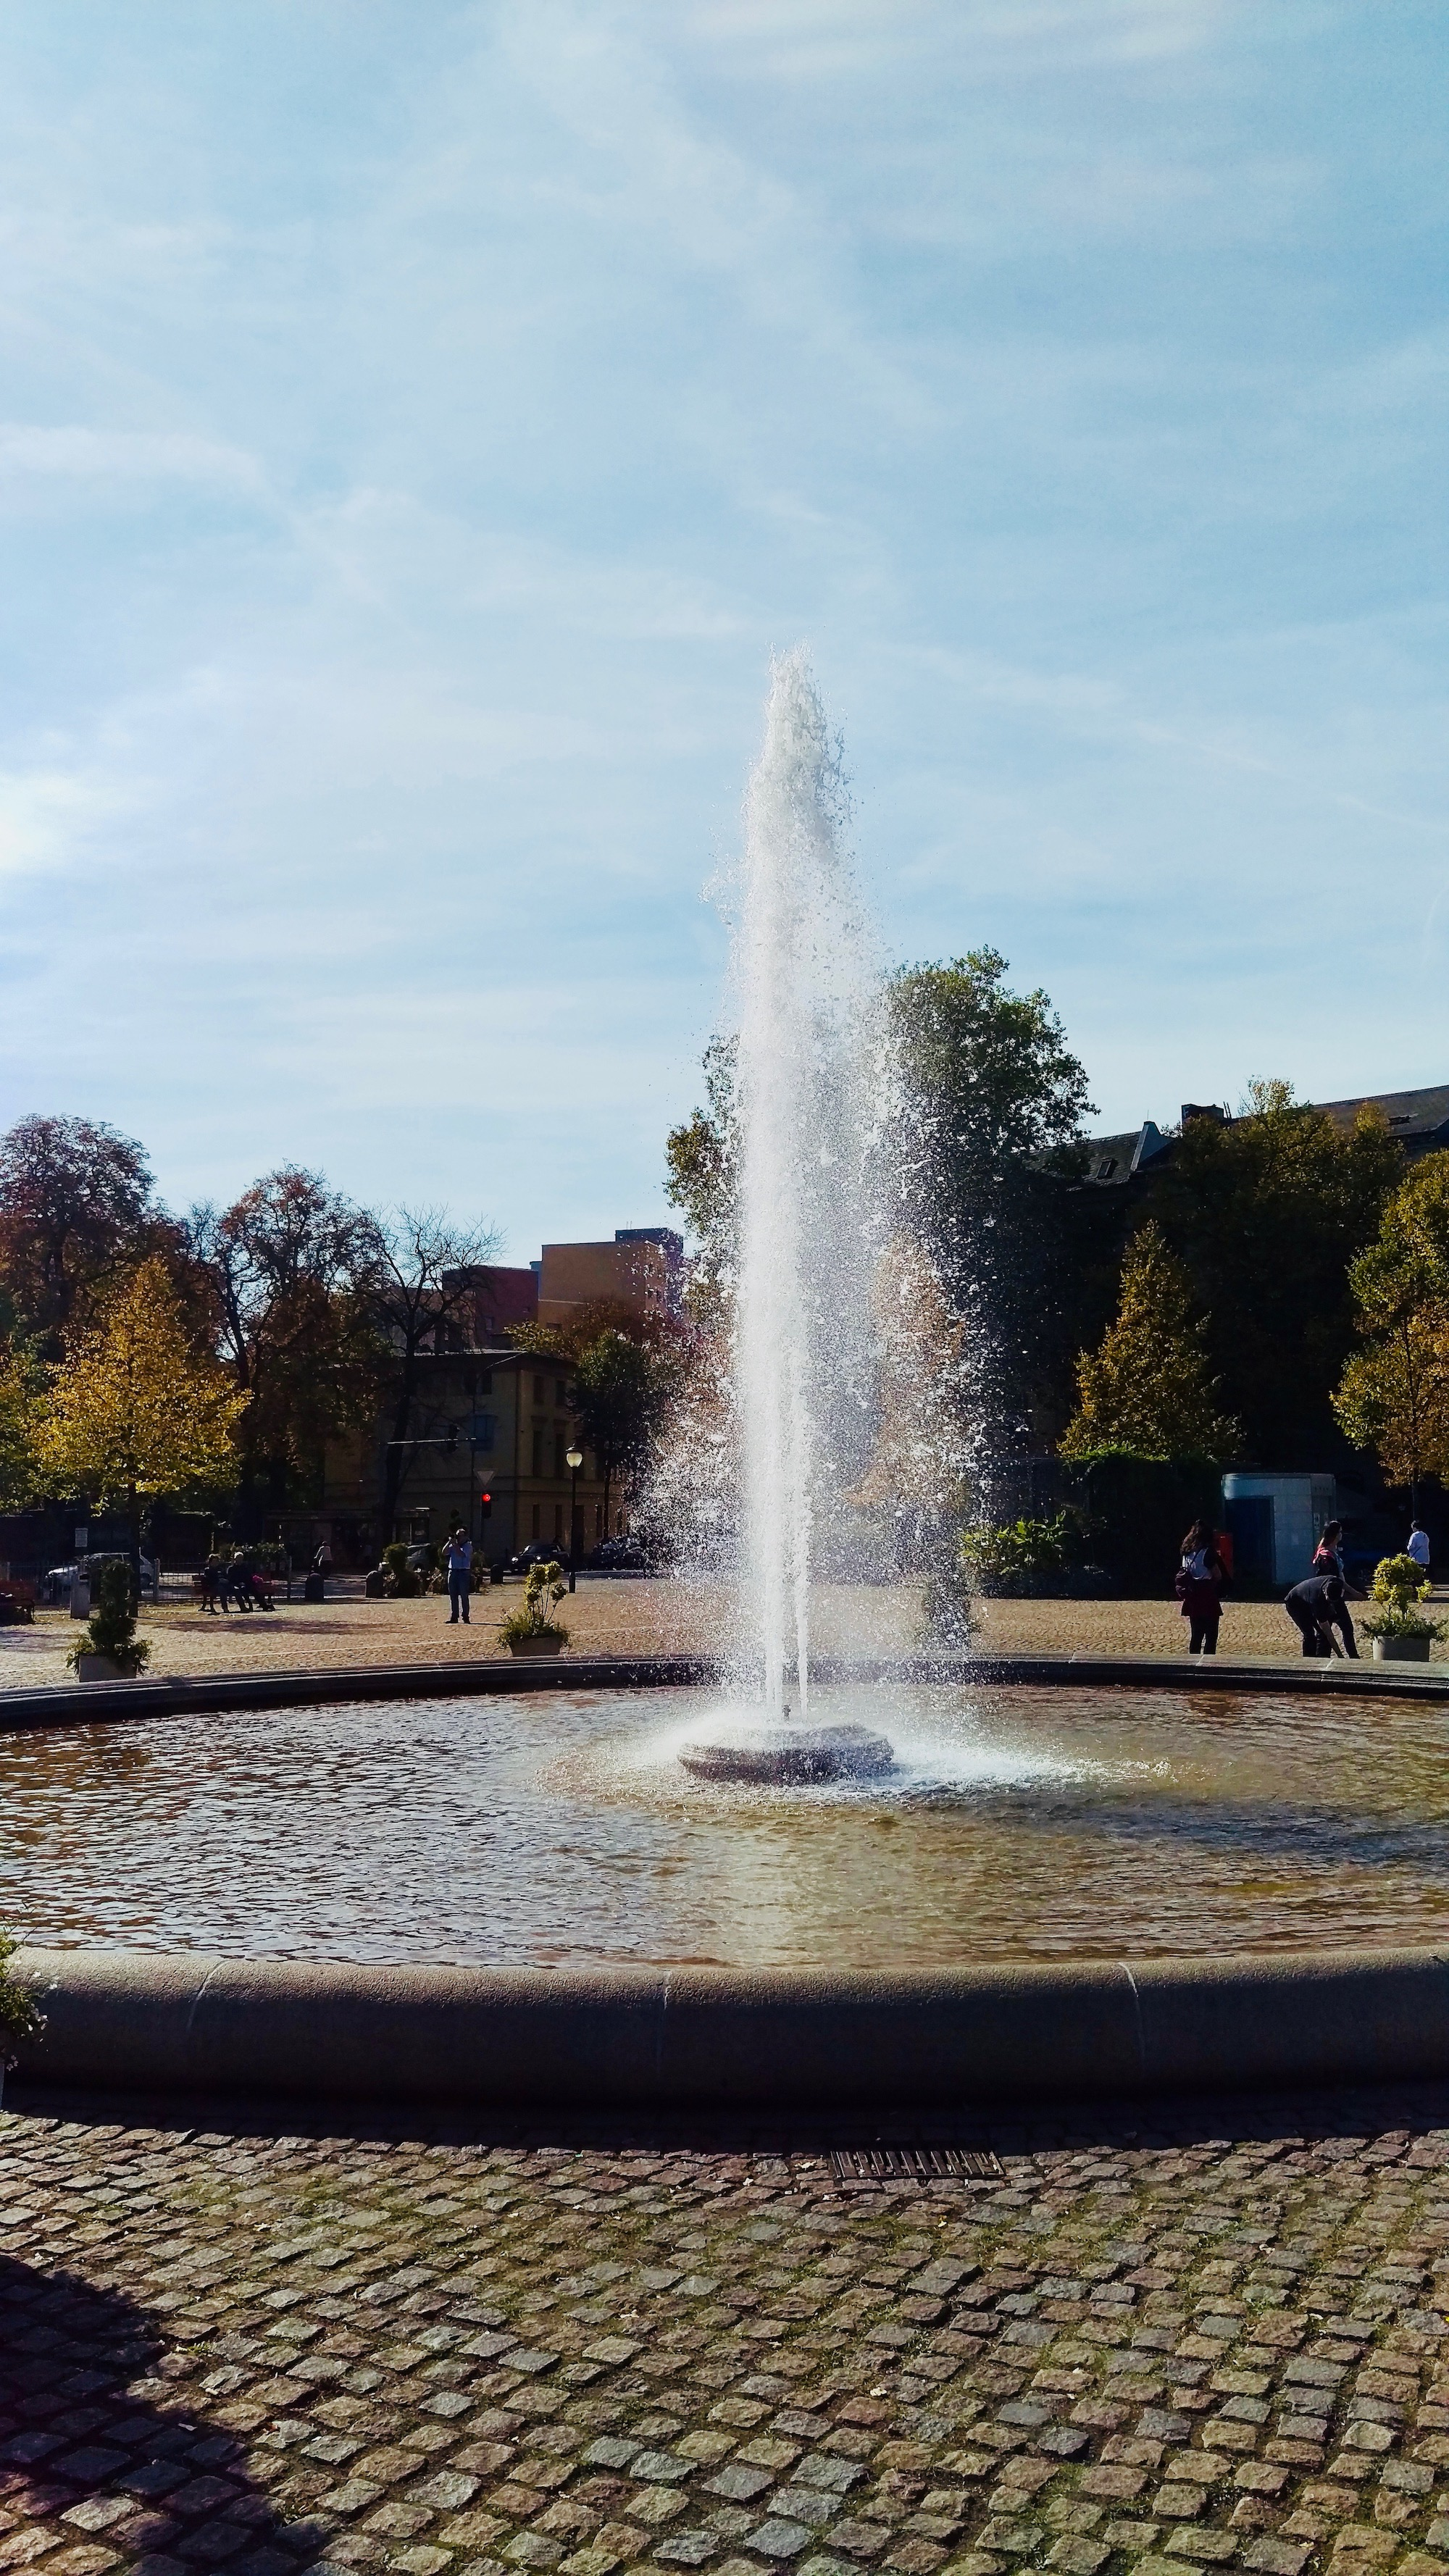 Fountain Luisenplatz - A great place where to spend your summer day!